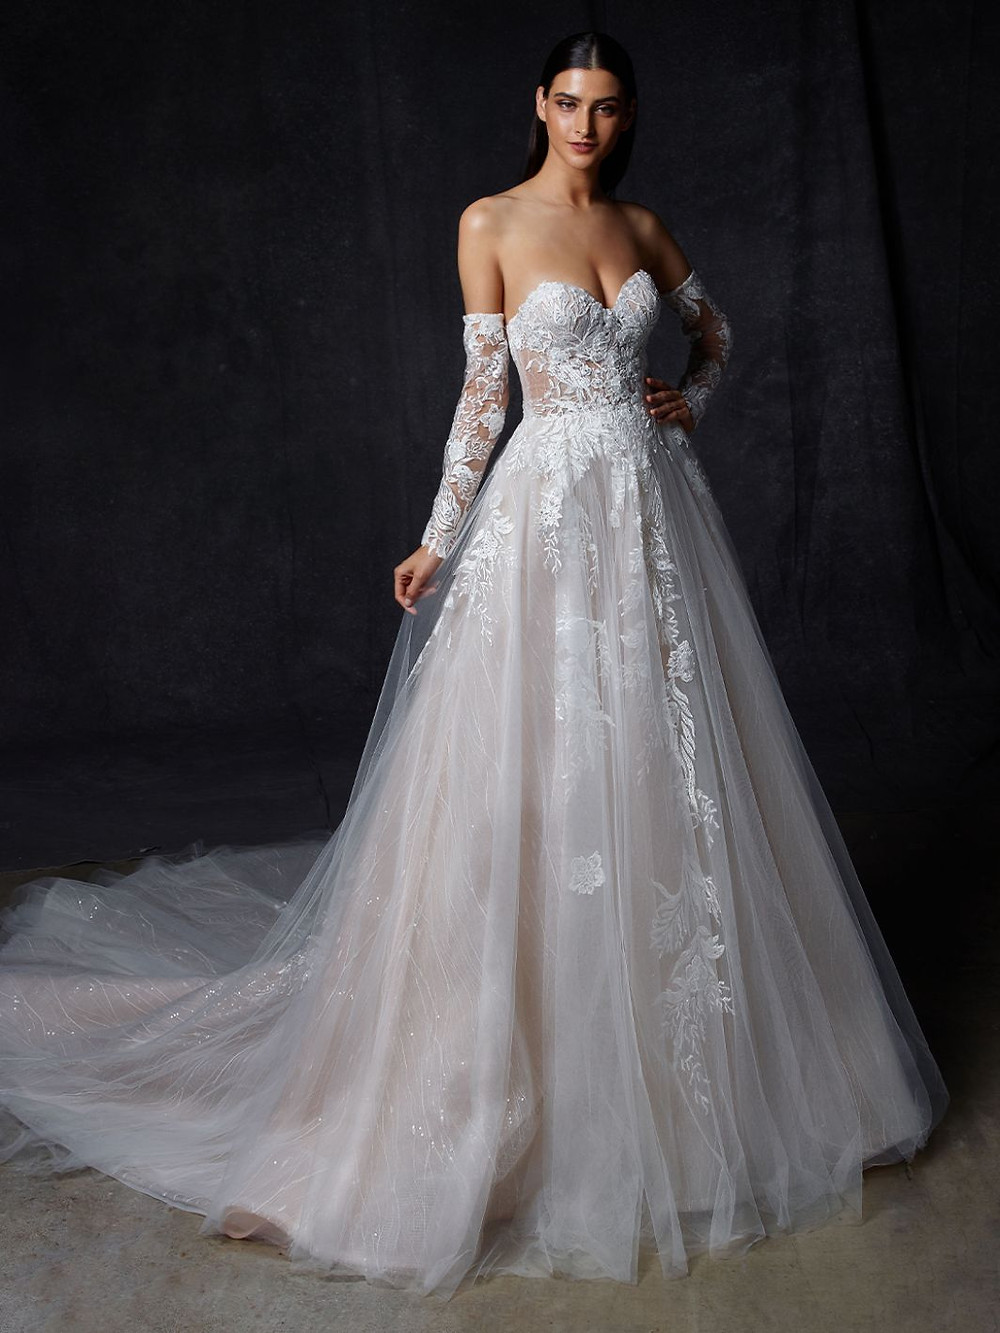 An Enzoani off the shoulder, lace and tulle ball gown wedding dress with lace gloves and a light pink skirt